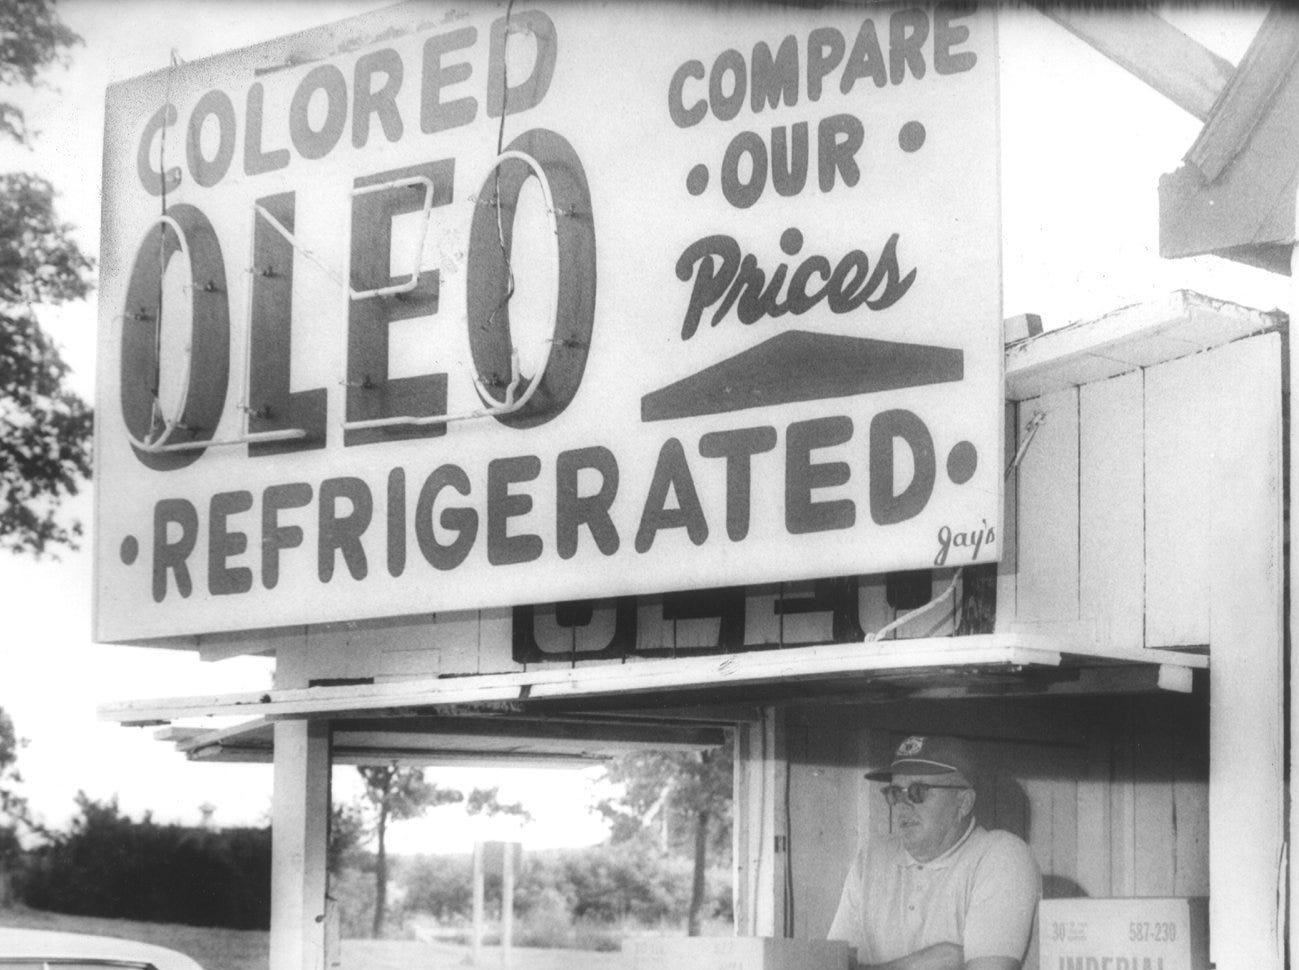 1967: Until the oleo ban was repealed, stands like this one were a common site.